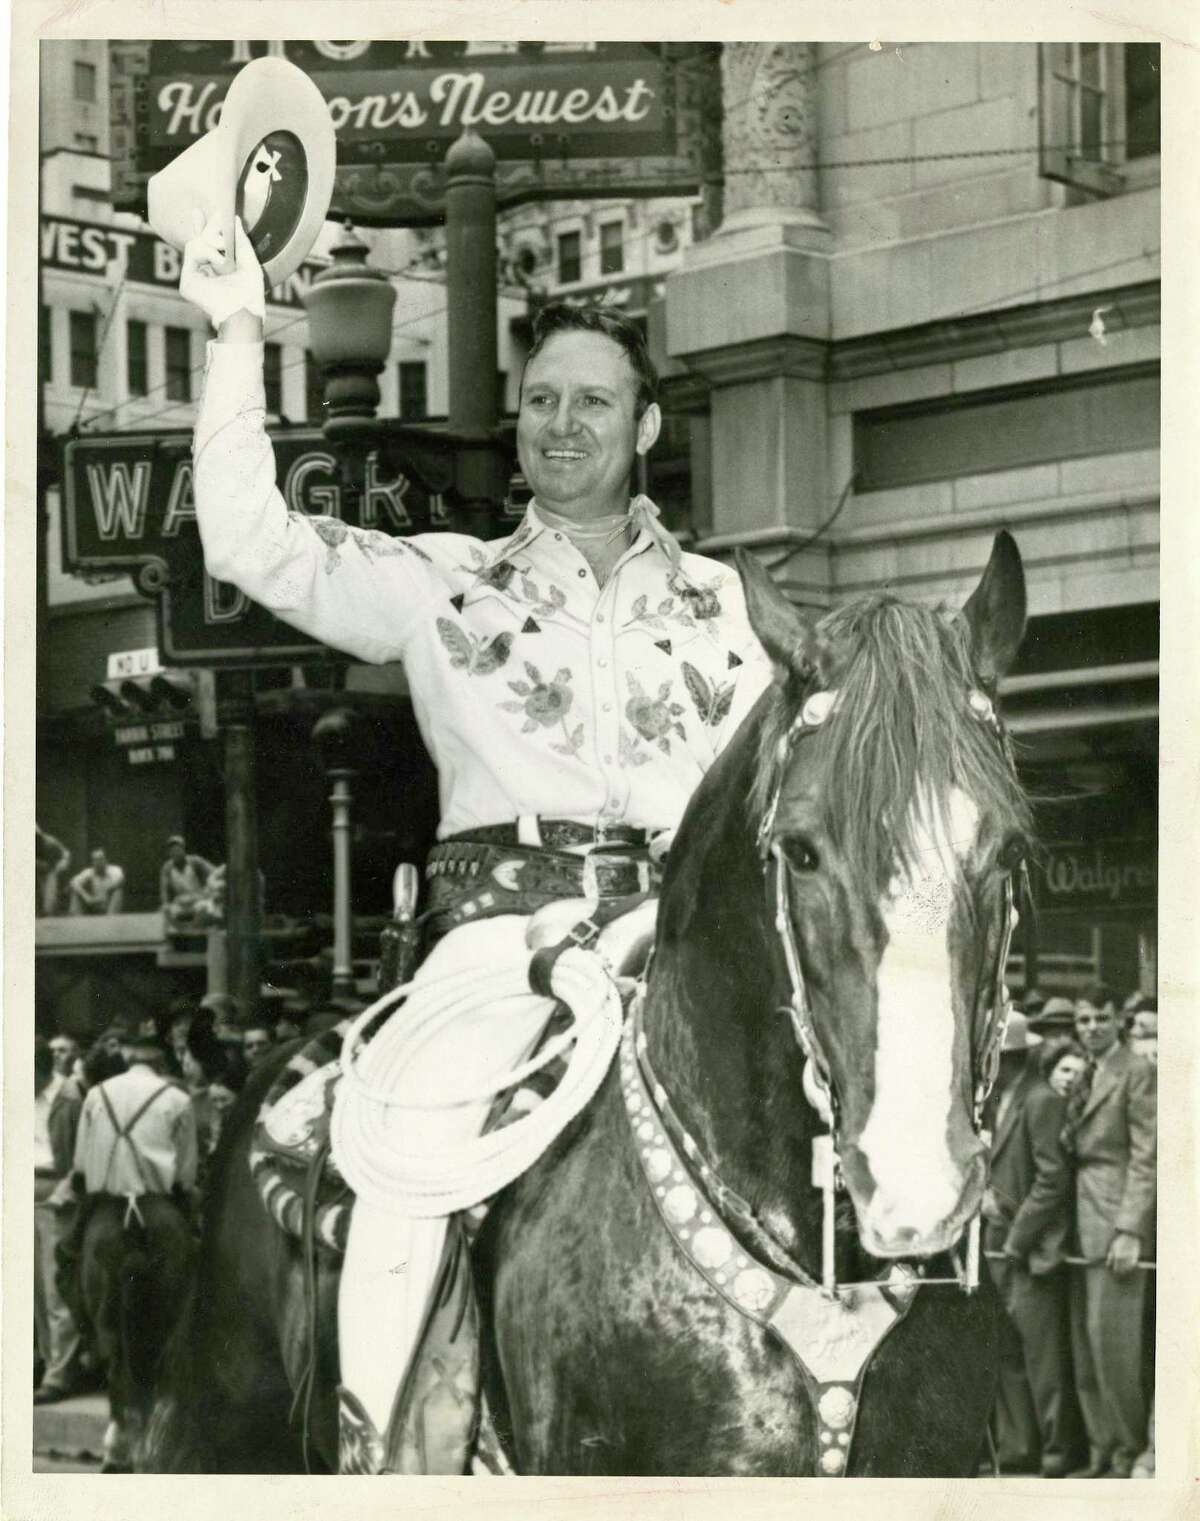 Gene Autry - 1996 Gene Autry with his magnificent horse, Champion, rode into the Houston Rodeo arena and into the hearts of Houstonians when he appeared as the Show's first big name star entertainer in 1942.This larger than life cowboy hero set a high standard for future Houston Rodeo entertainers. He also worked behind the scenes, producing the Houston Rodeo for many of its early years. Entertainer Gene Autry in Houston Fat Stock Show and Rodeo parade , Jan. 31, 1947.